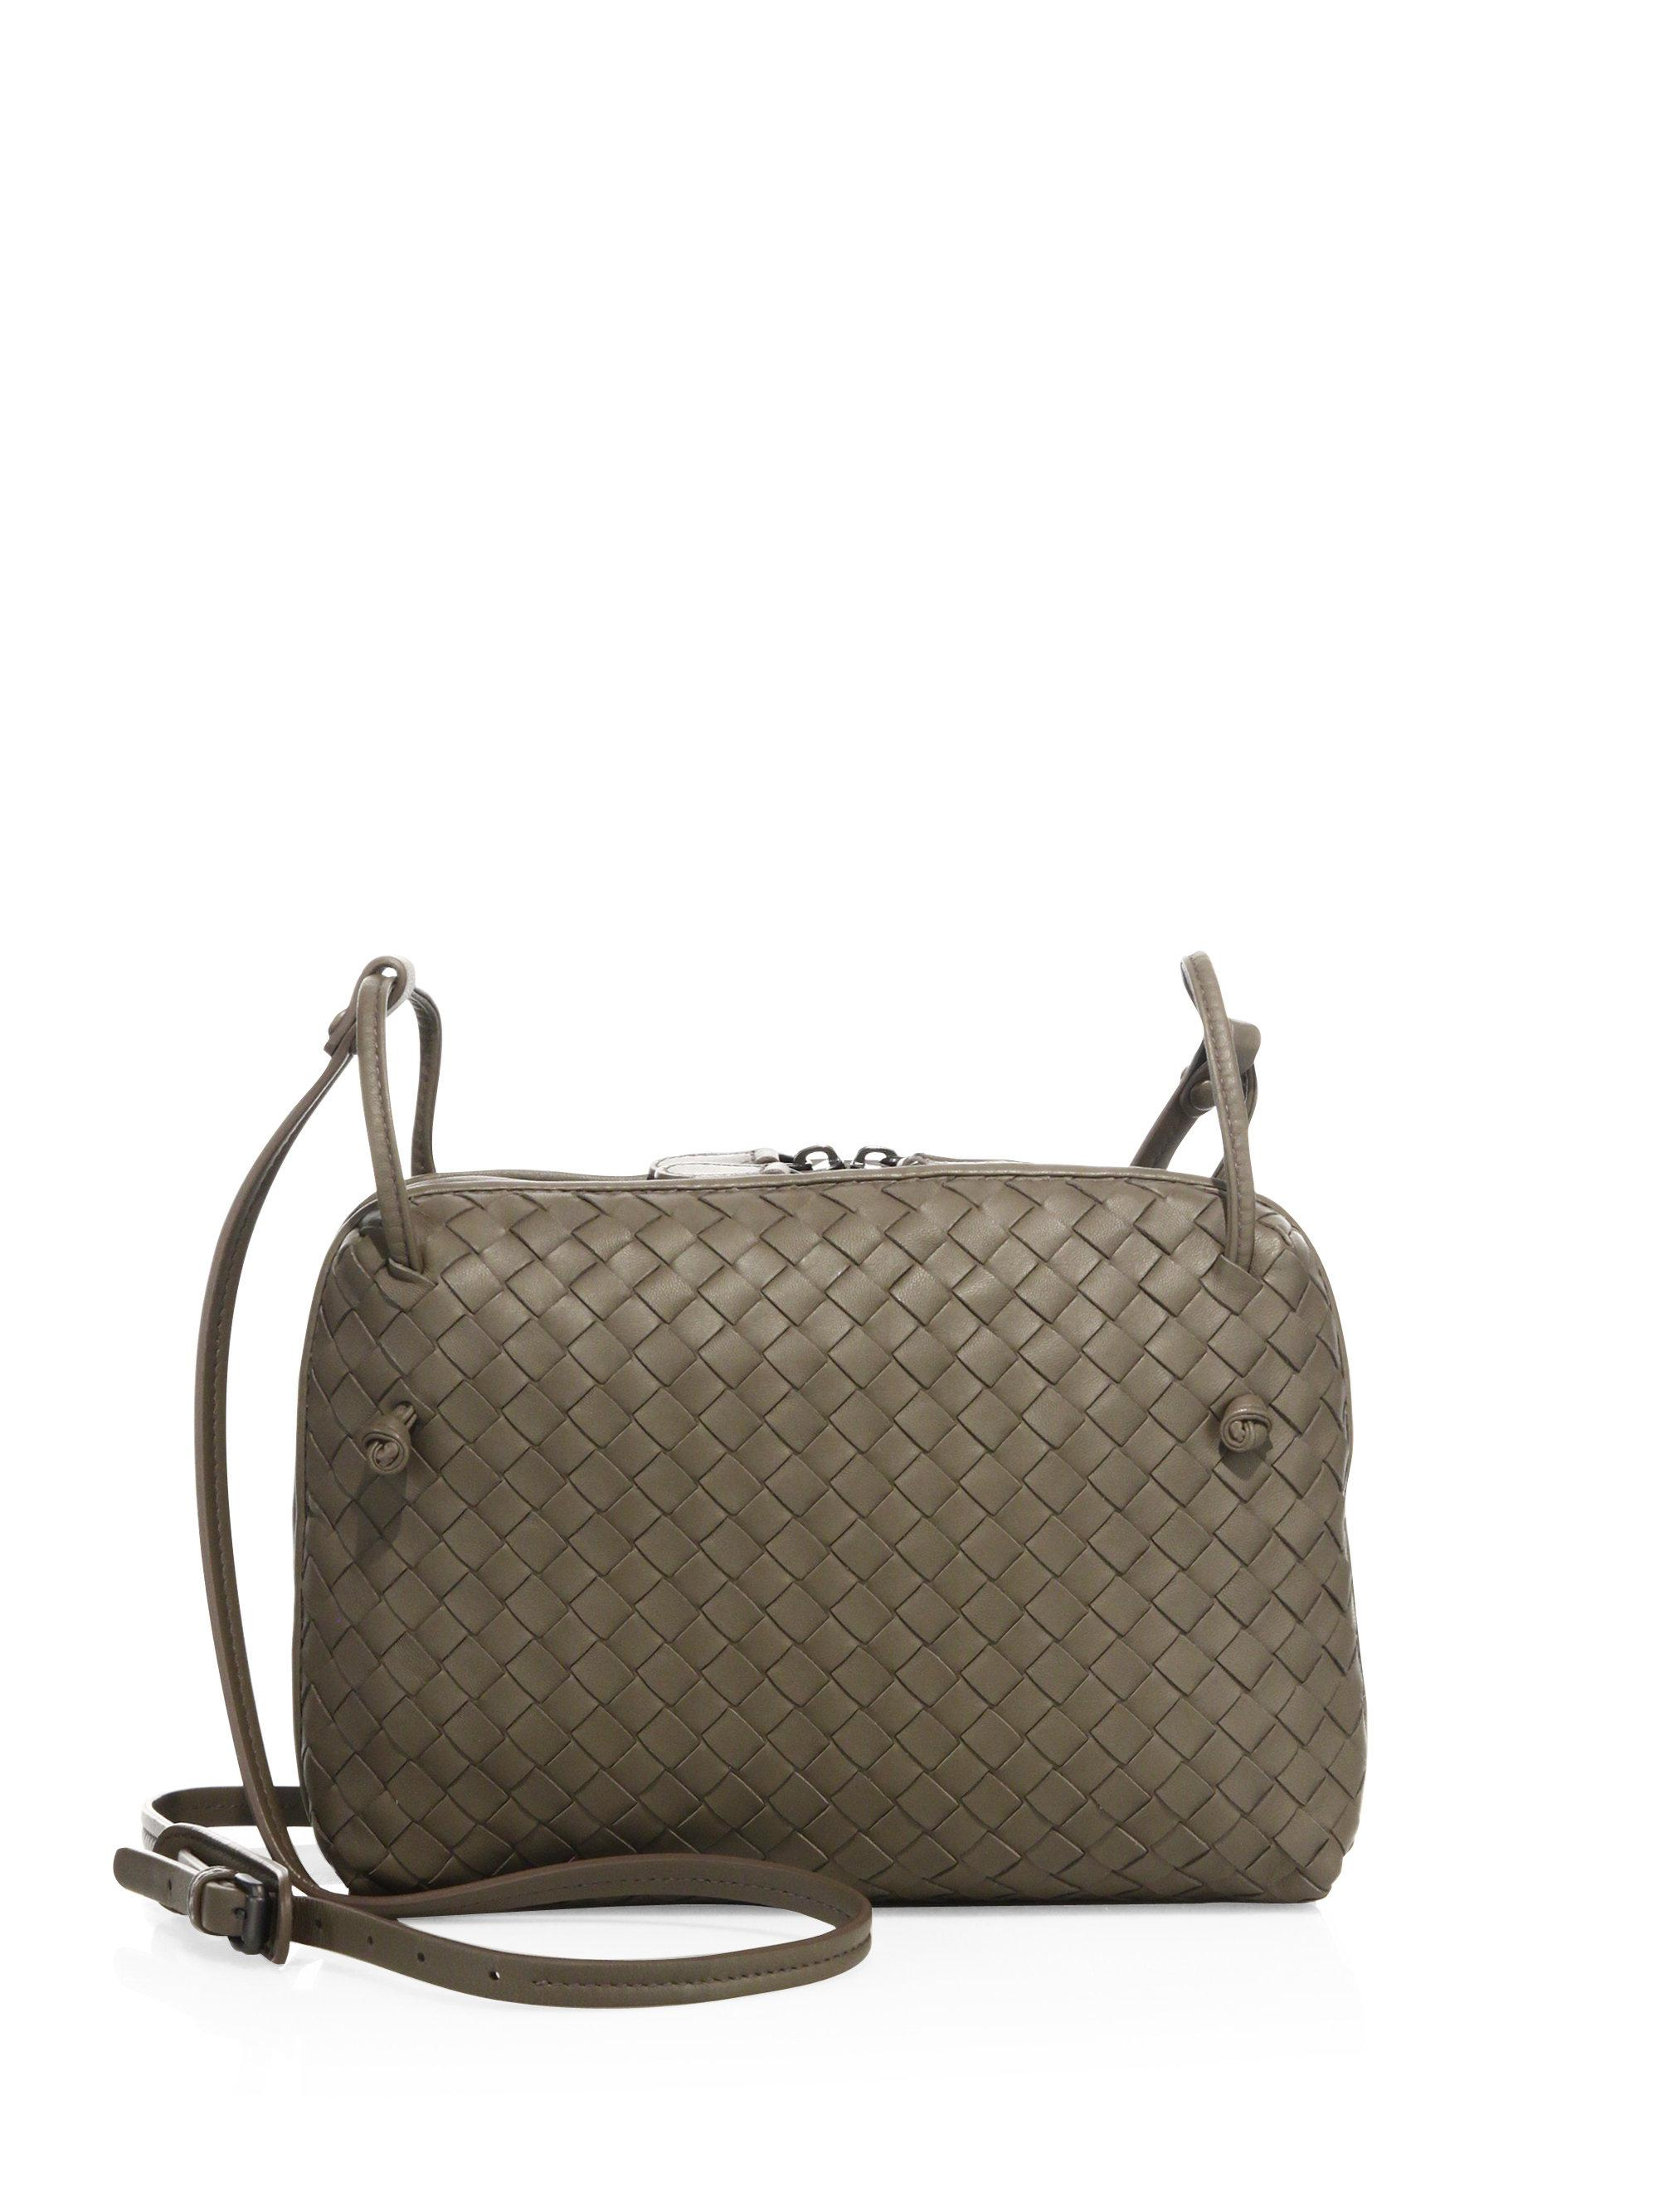 3dbfe3835e61 Bottega Veneta Intrecciato Leather Double-zip Pillow Bag - Lyst